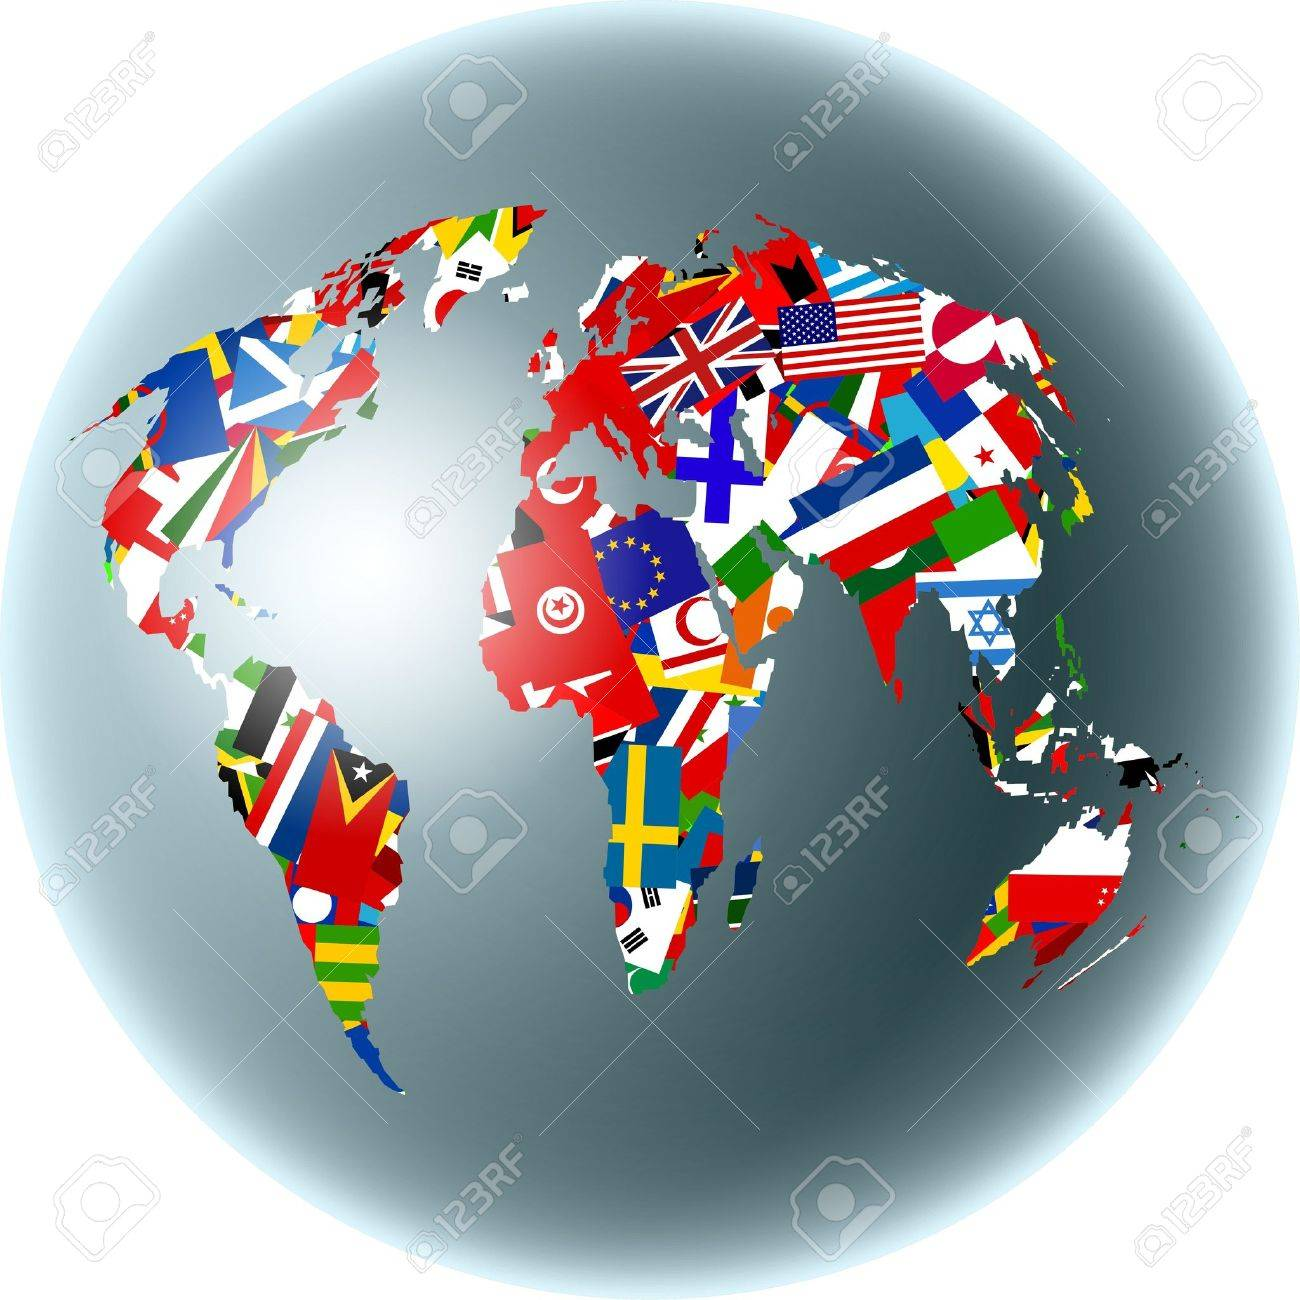 Map of the world set on a globe made up of various national flags map of the world set on a globe made up of various national flags stock gumiabroncs Gallery